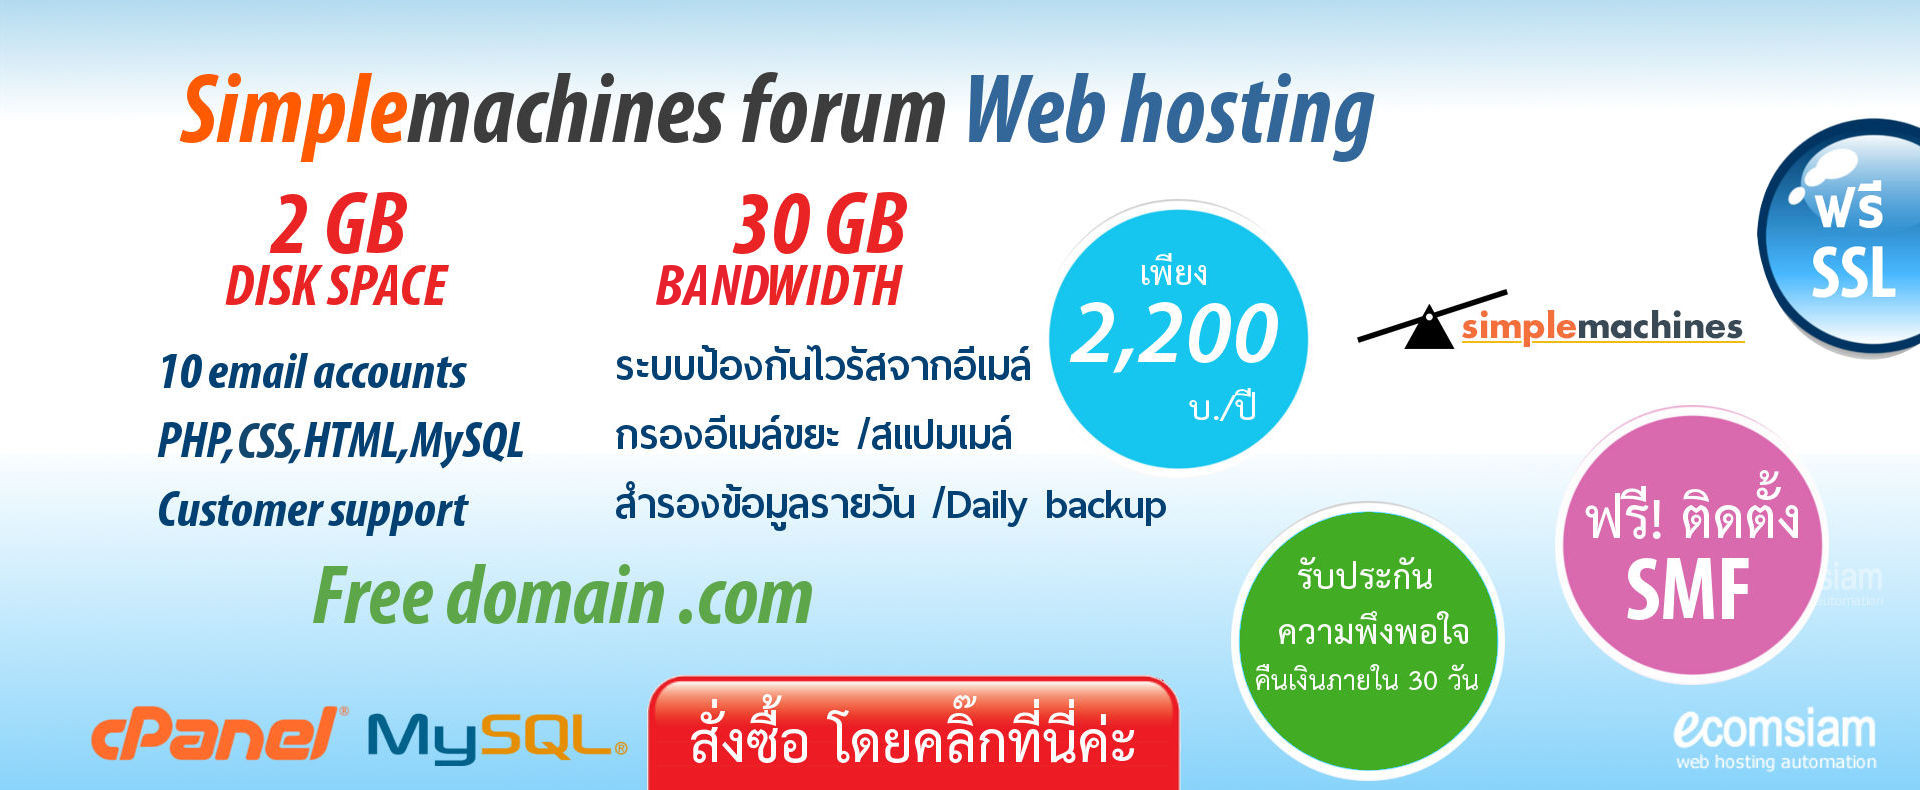 smf : simple machines forum web hosting thailand -เว็บโฮสติ้งไทย ฟรีโดเมน ฟรี SSL - web-hosting-thailand-free domain-smf : simple machines forum web hosting-banner